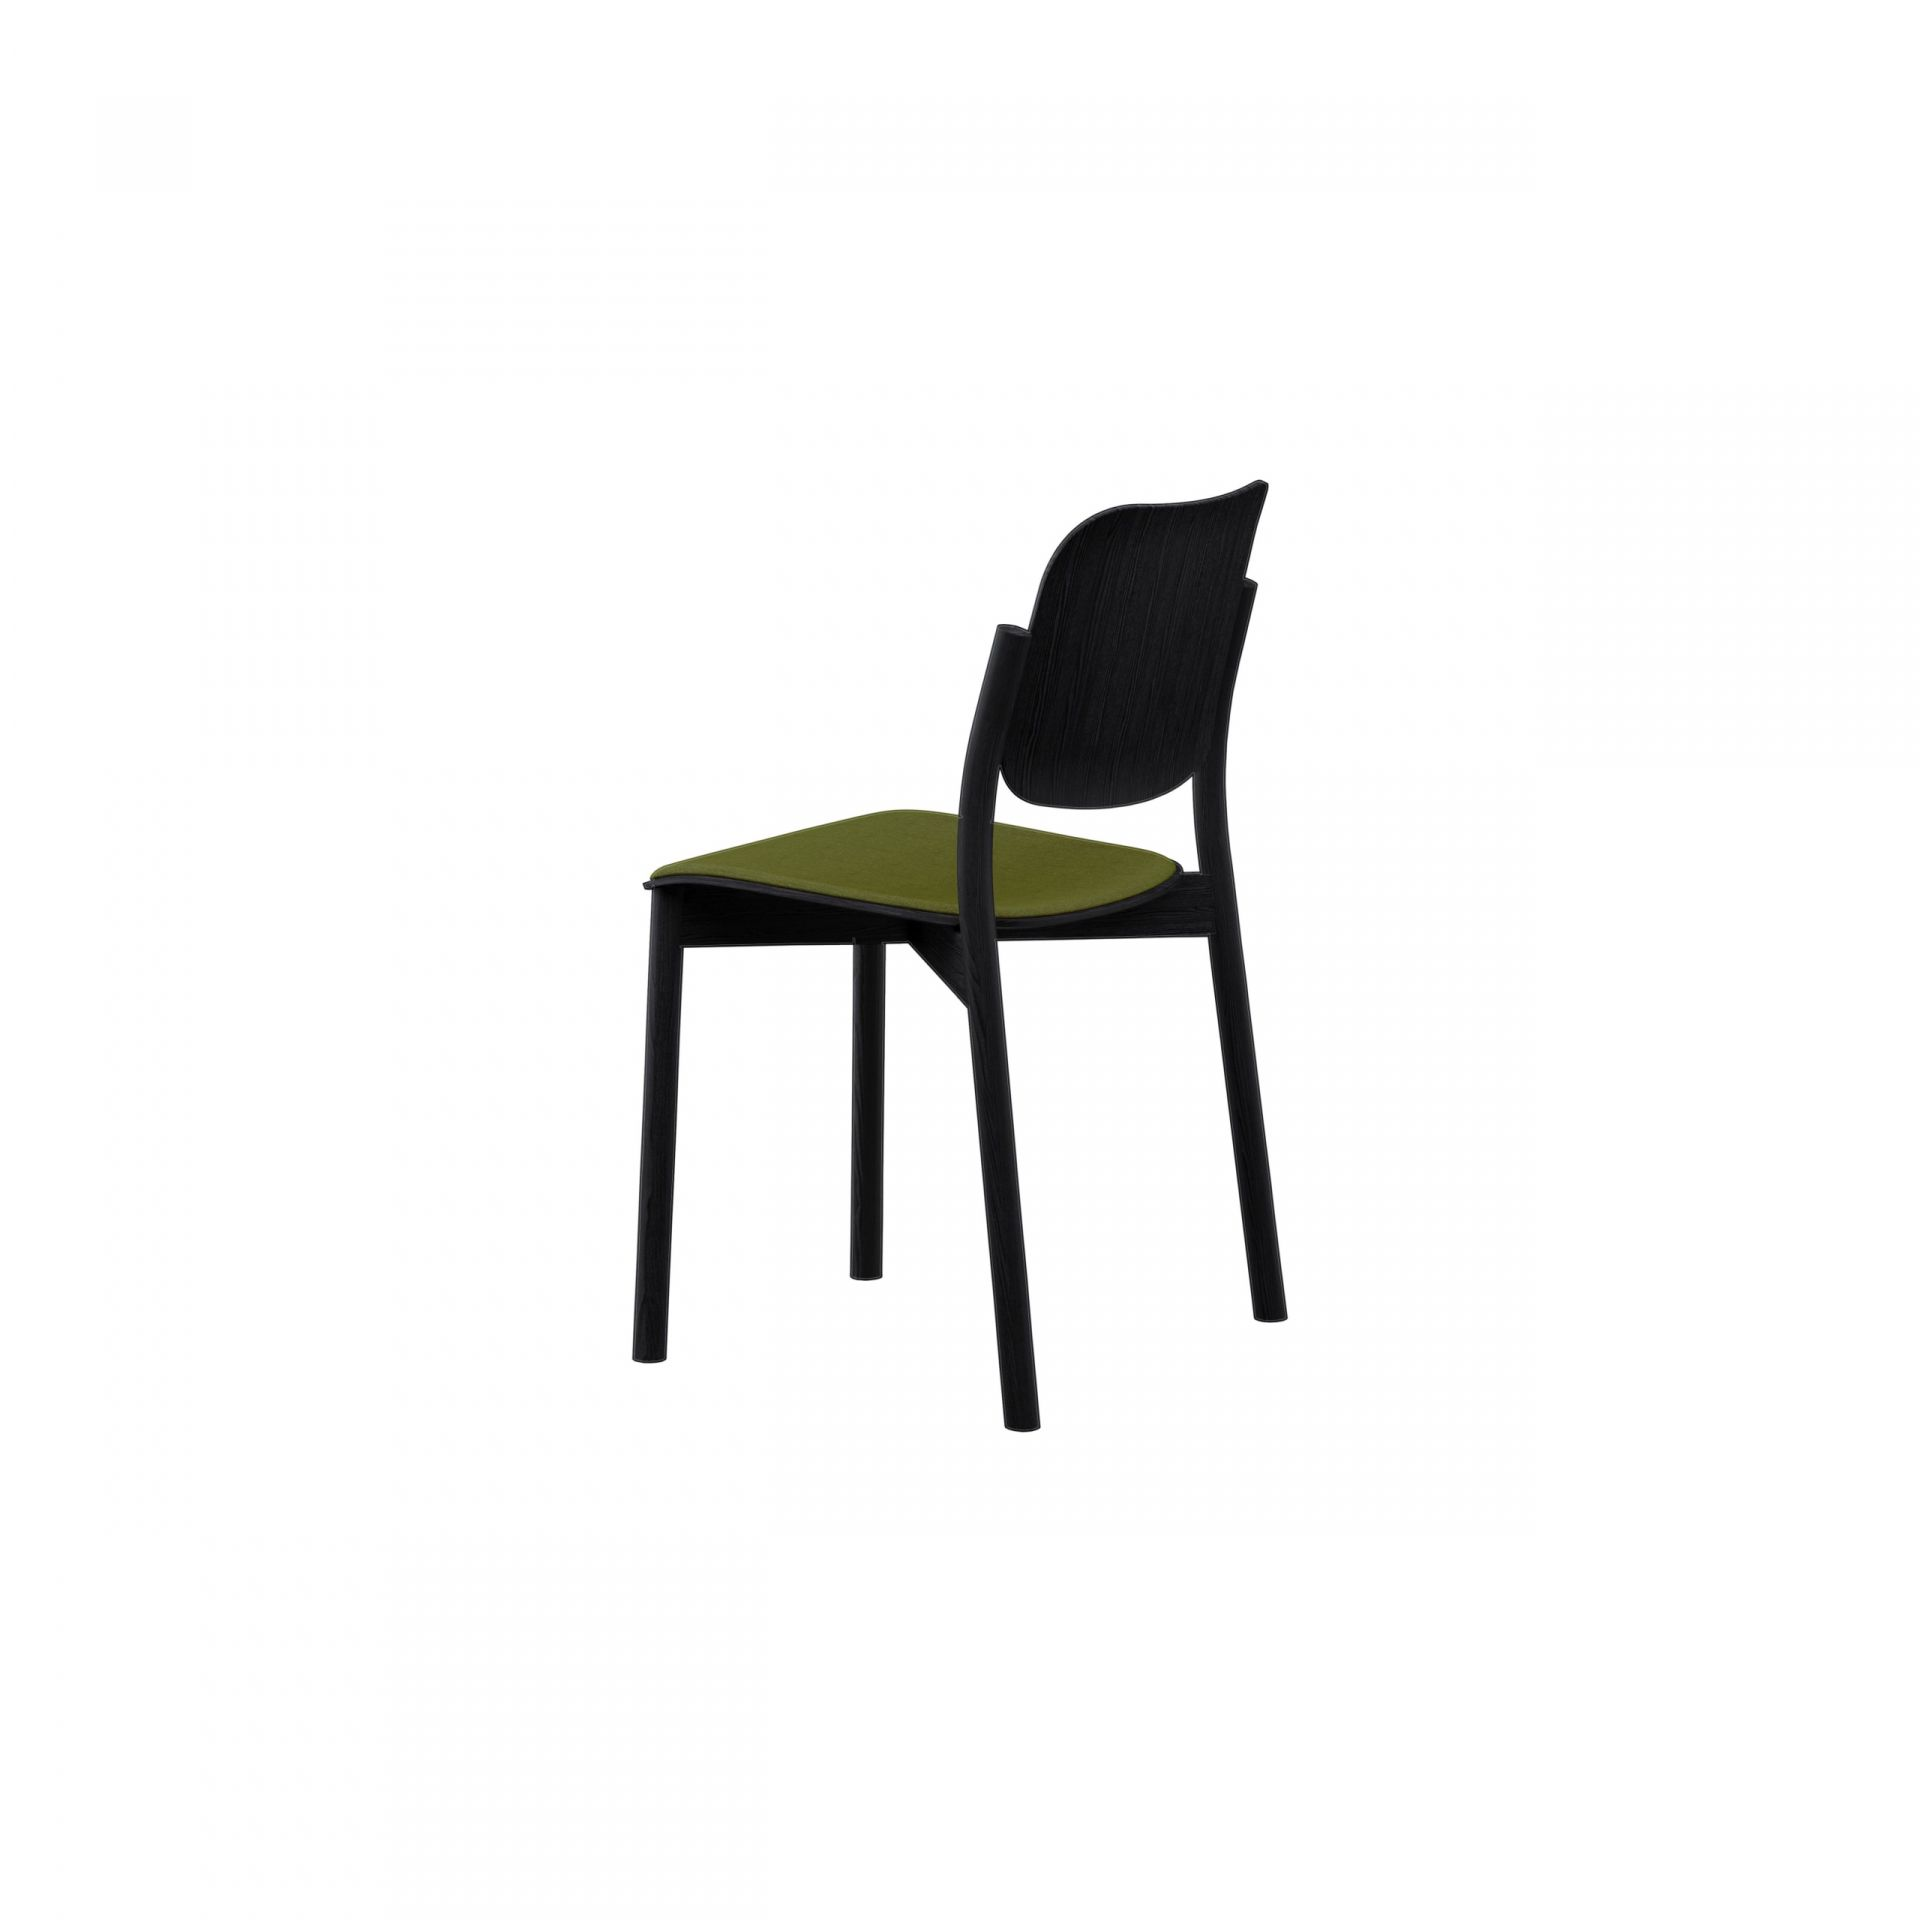 Zoe Wooden chair product image 8